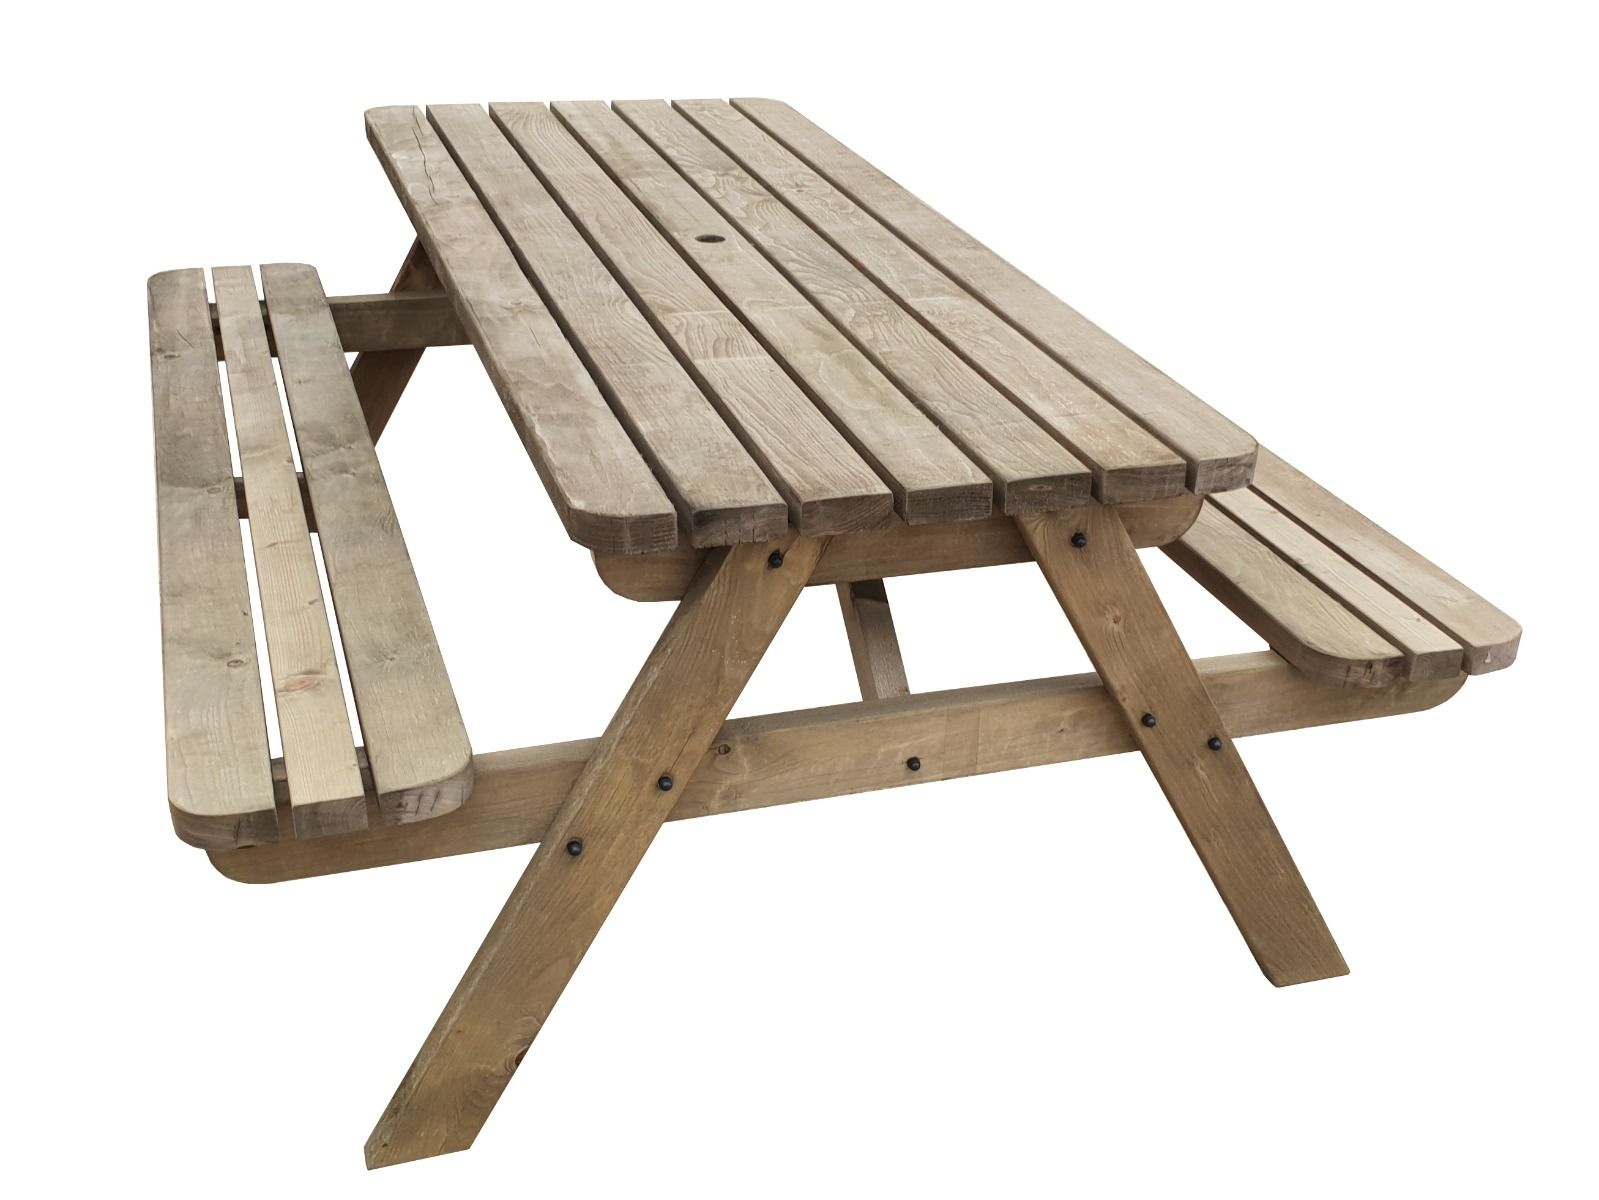 Details about Picnic Table and Bench Wooden Outdoor Garden Pub Style  Furniture, Fortem Rounded